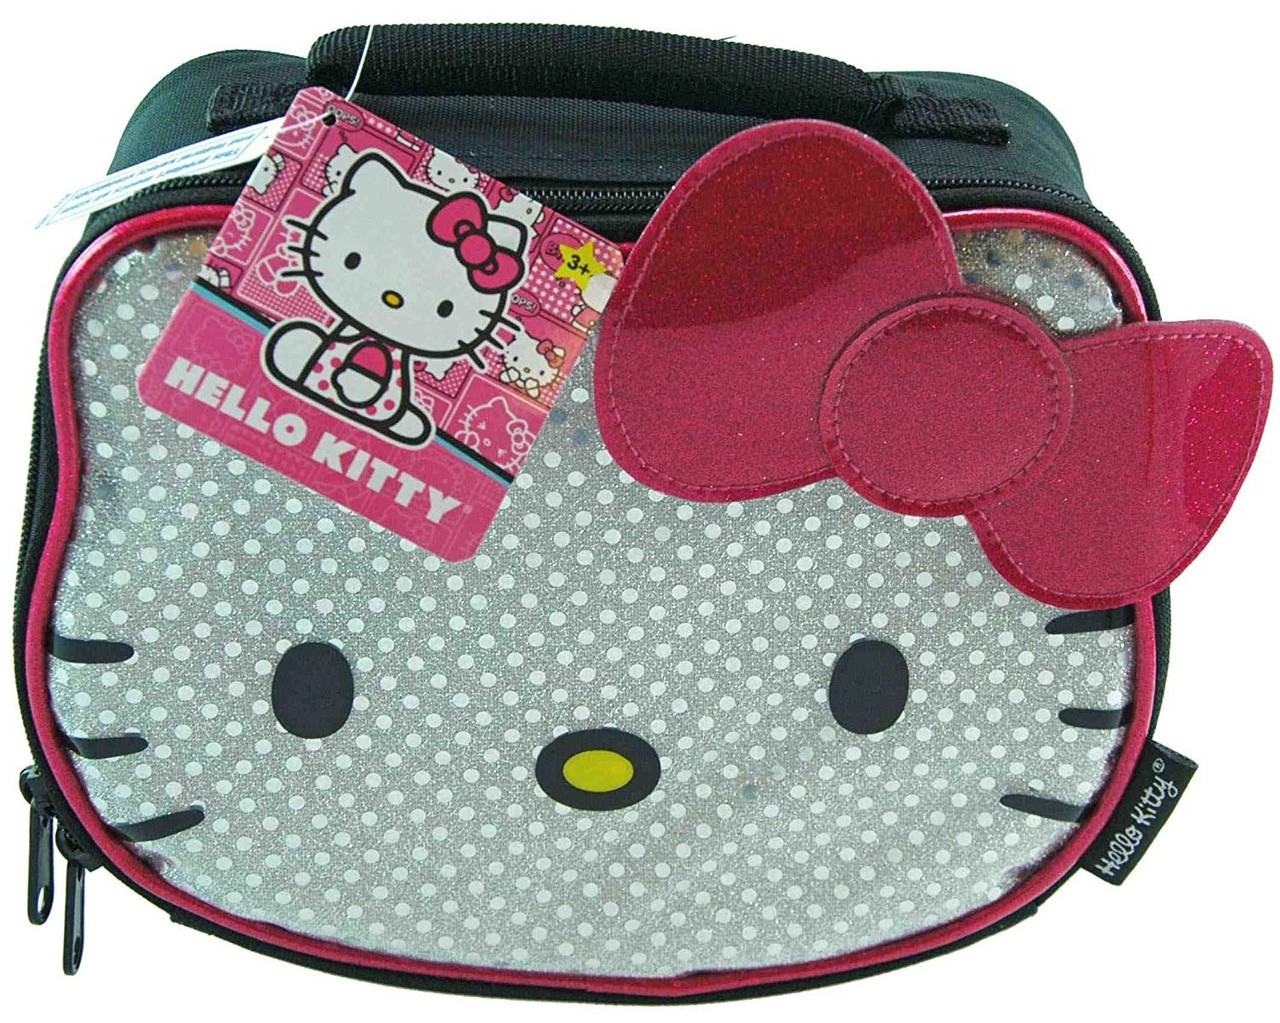 2b7d06bb6 Hello Kitty Lunch Box - Face | Partytoyz.com